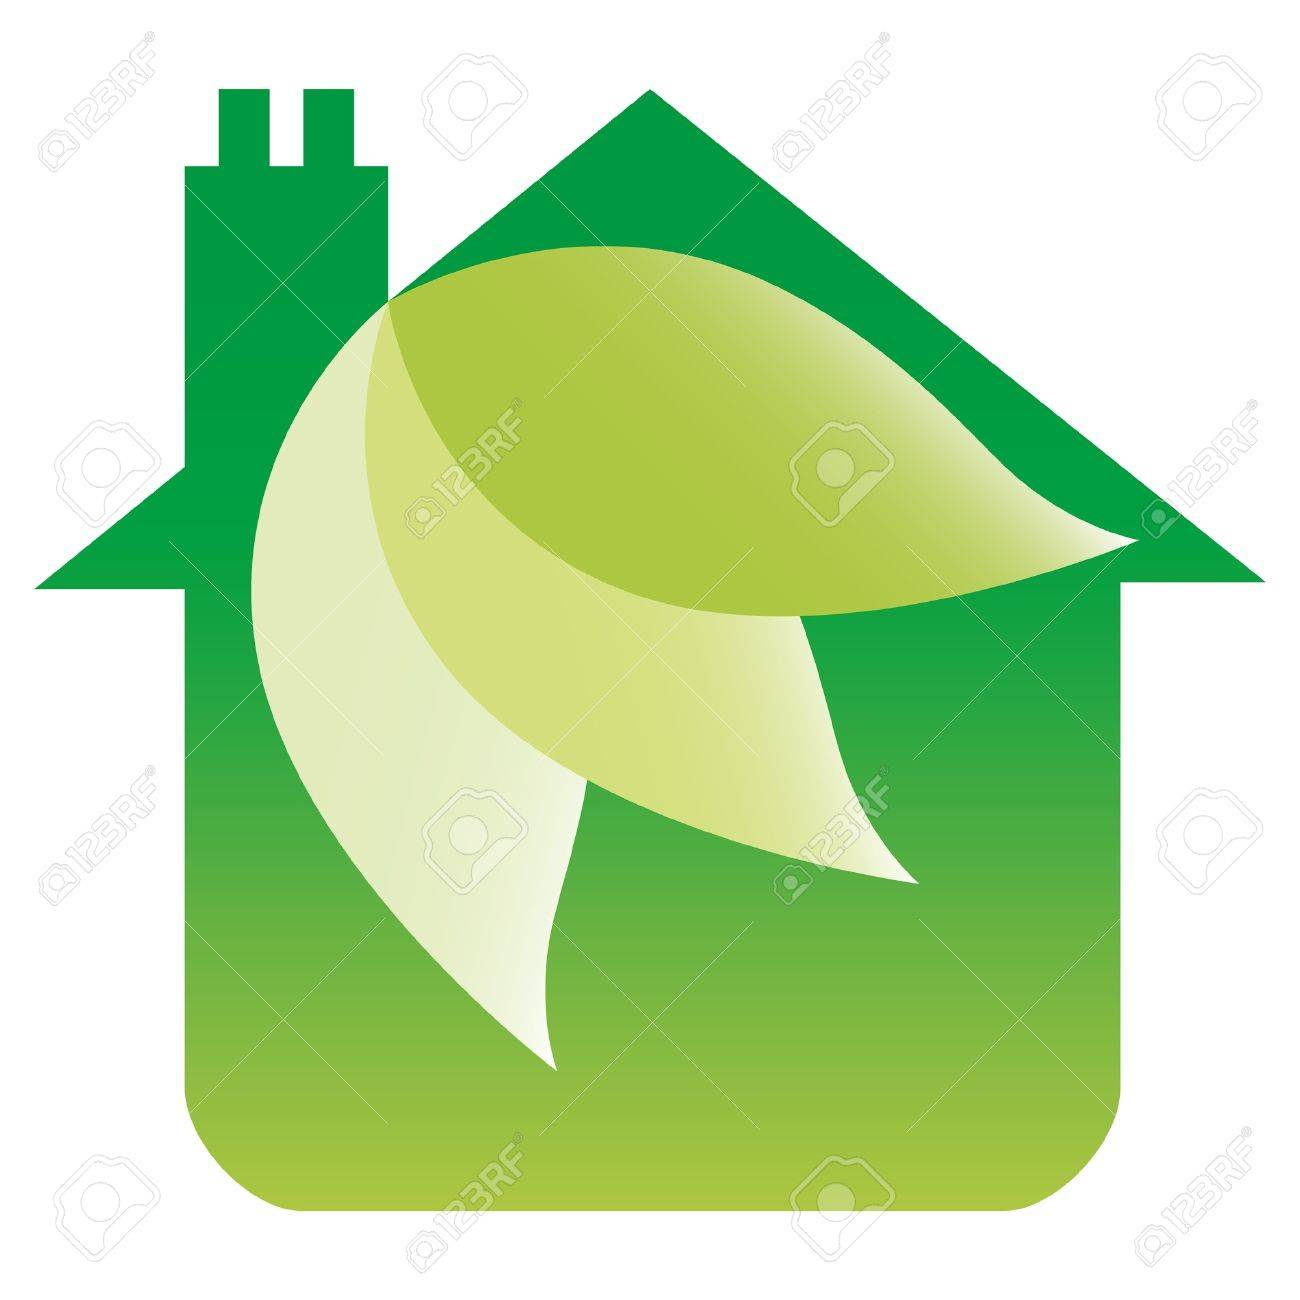 eco friendly house design. royalty free cliparts, vectors, and